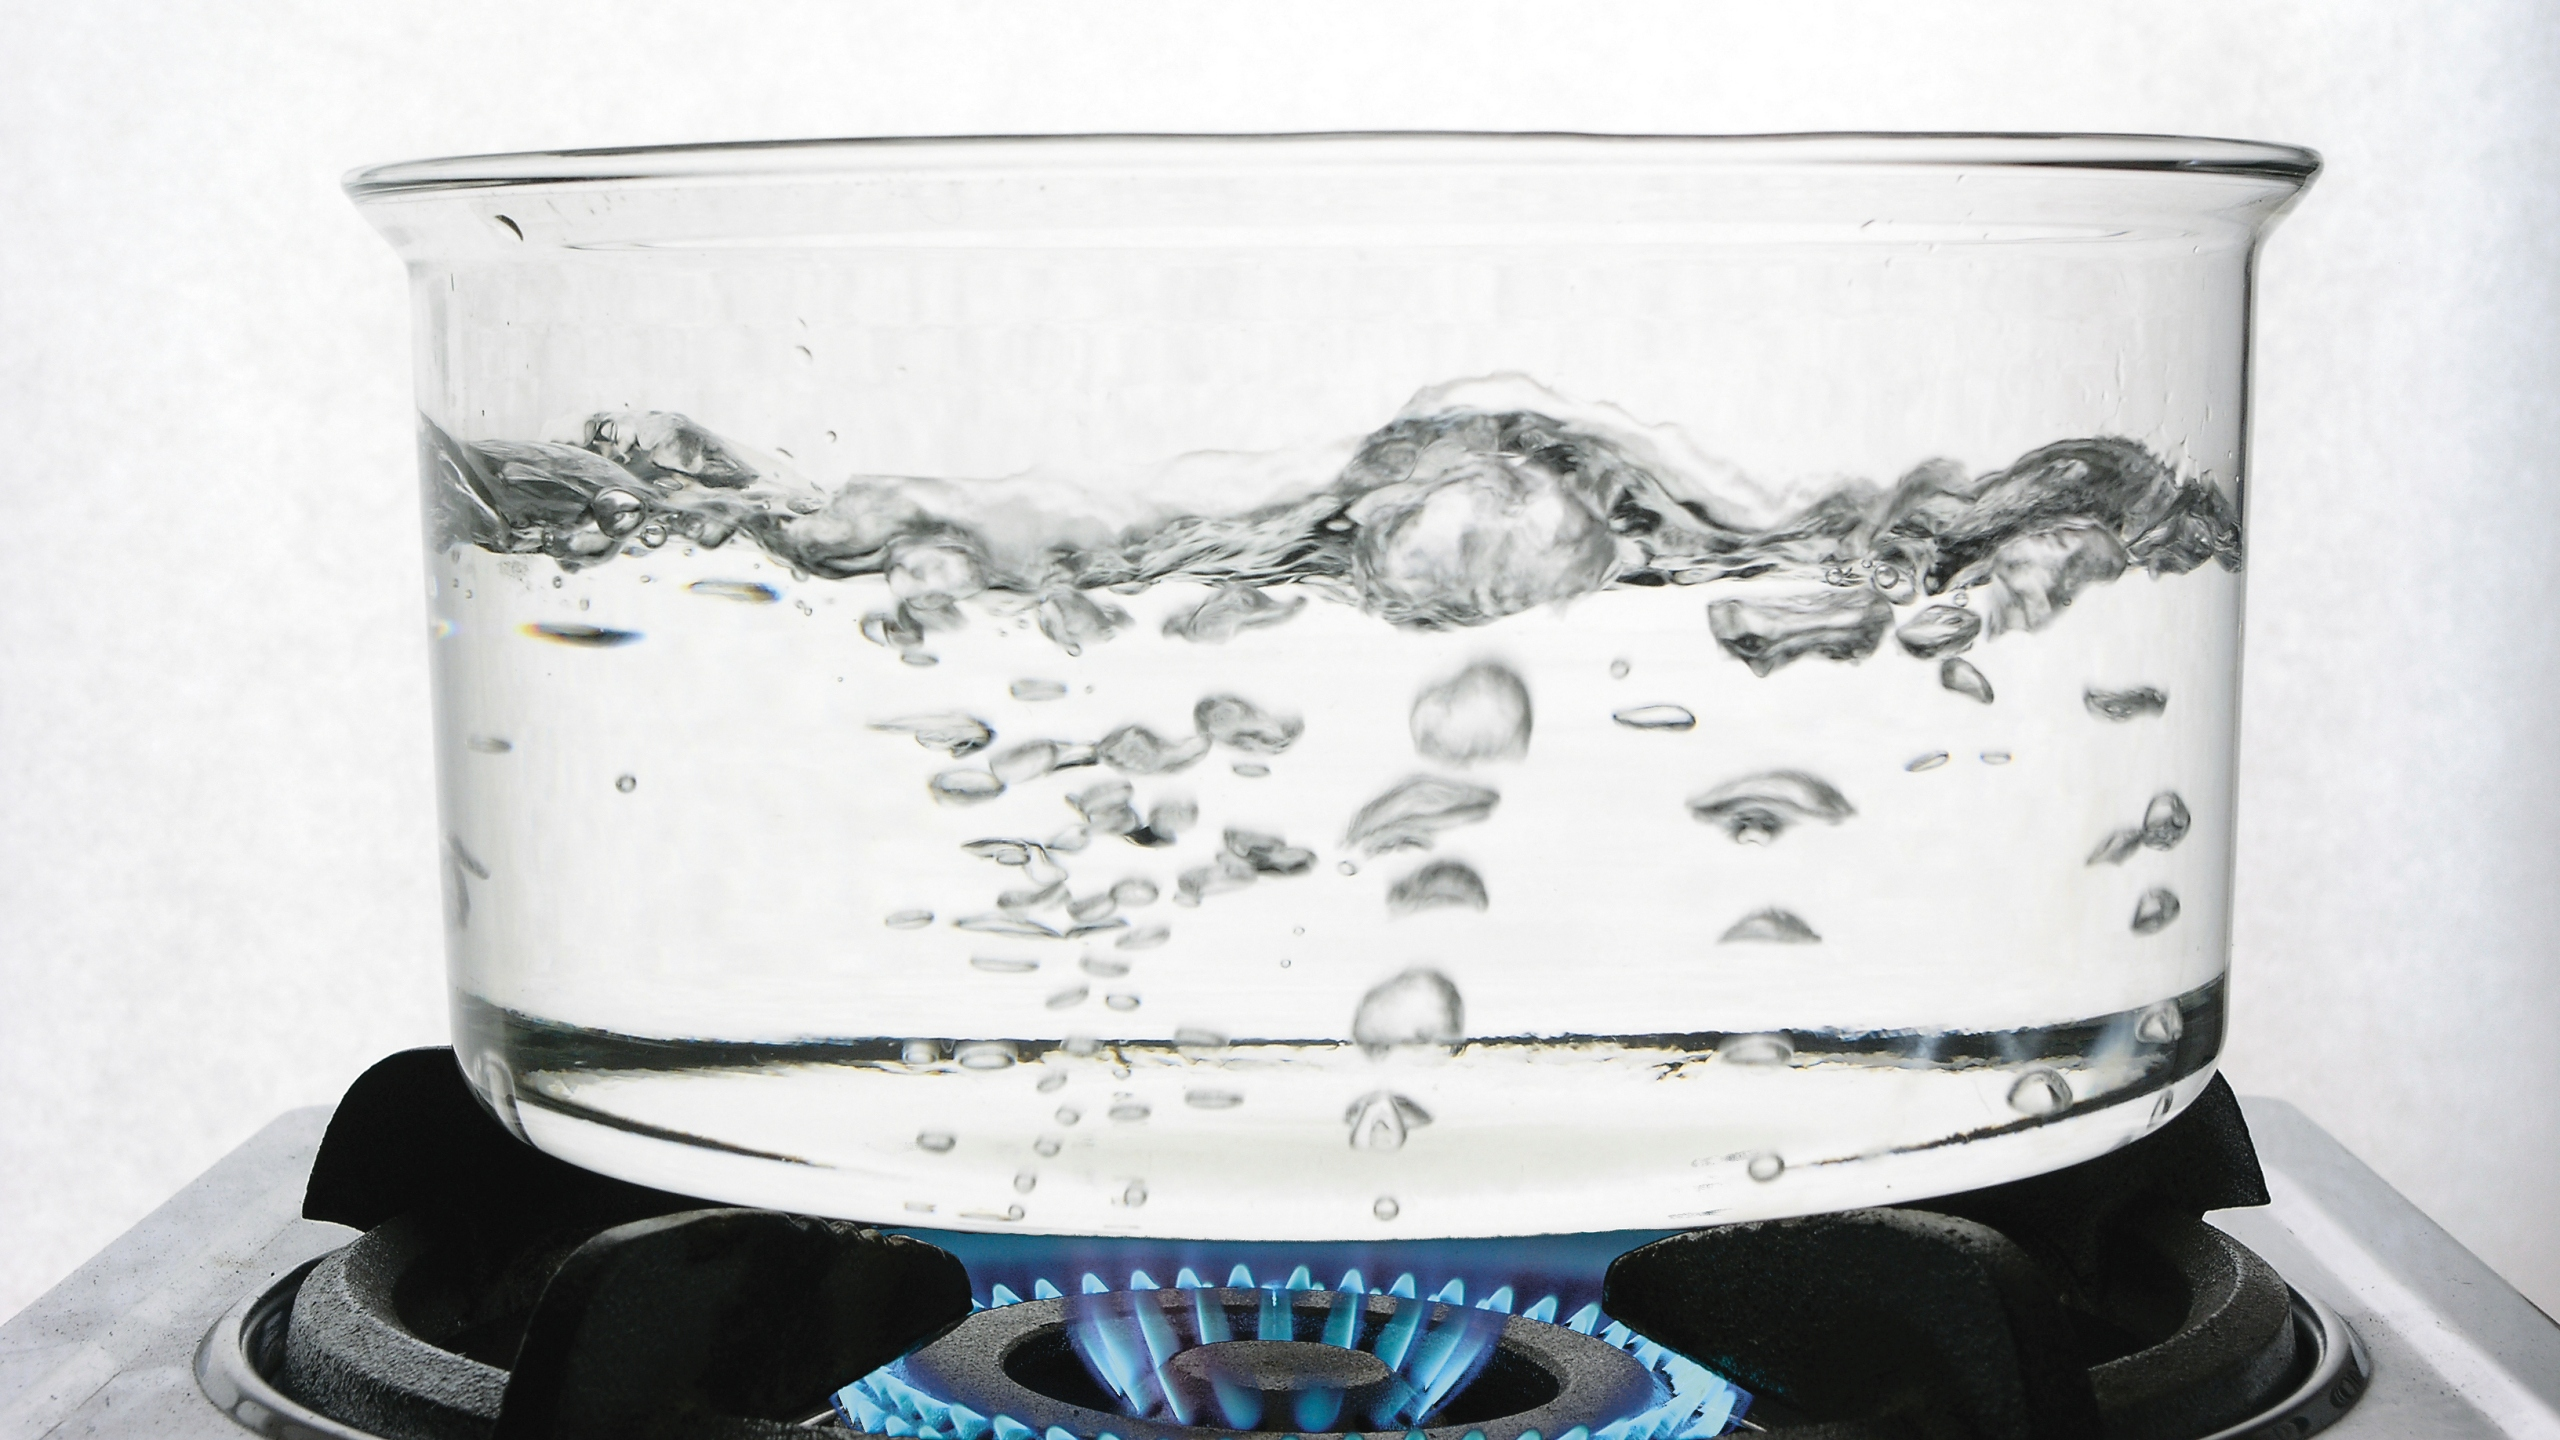 Boil water advisory issued for communities within WestchesterCounty